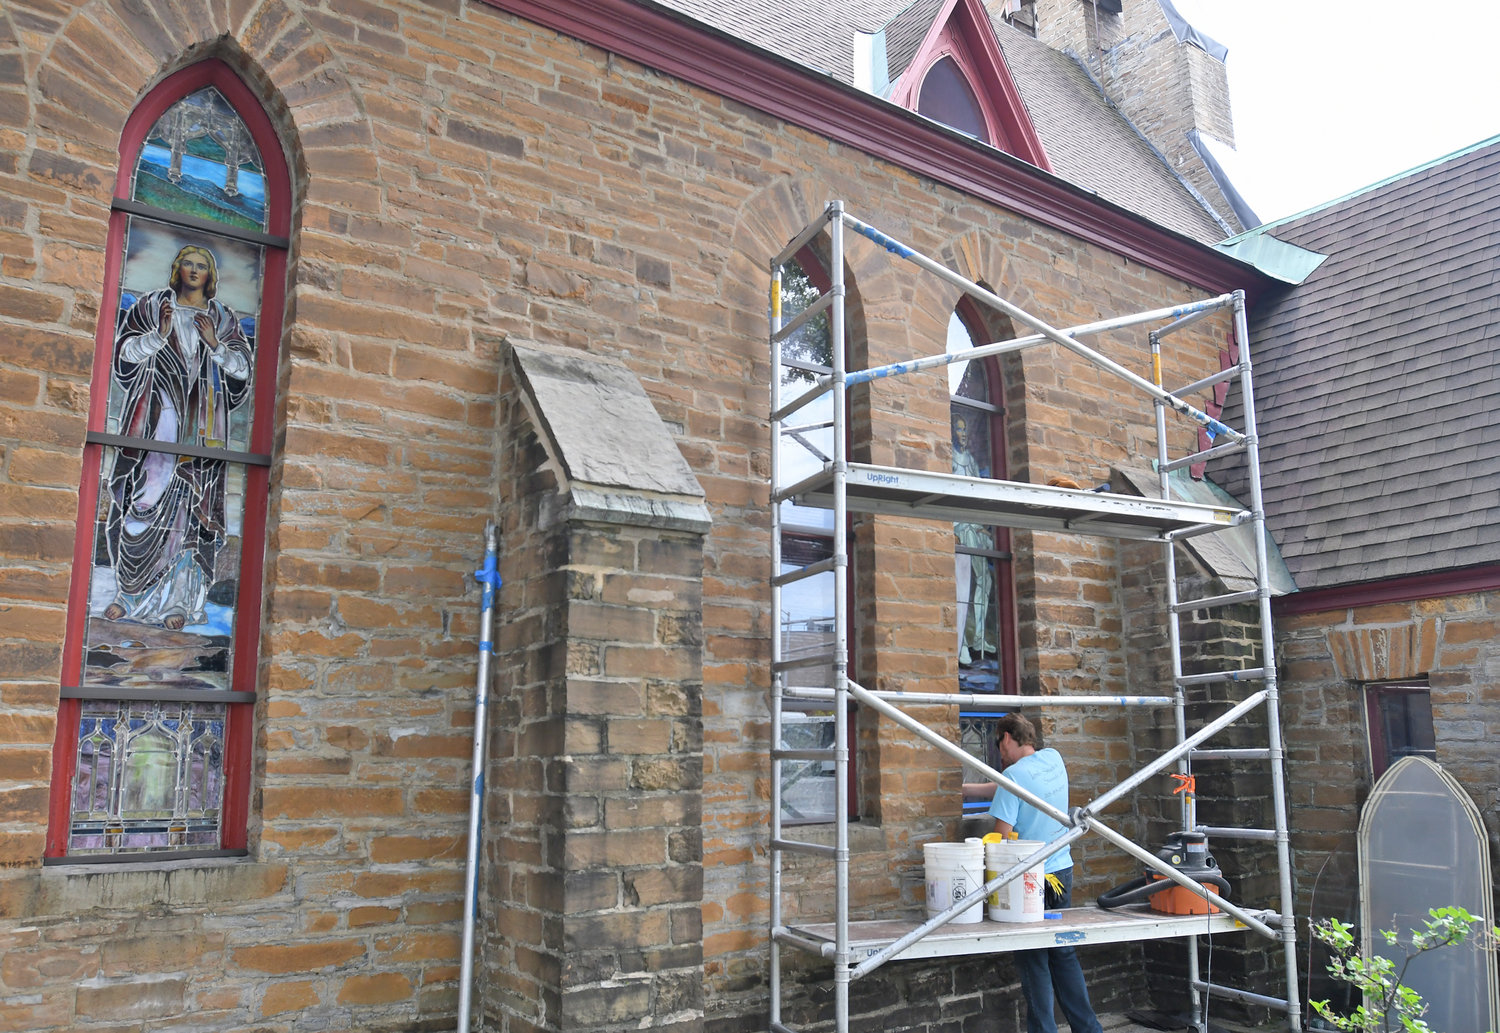 WORK IN PROGRESS — Michael McDonough, with J&R Lamb Studios, seals a stained glass window at the Zion Episcopal Church on Liberty Street Tuesday. Artists will be hard at work over the next couple days restoring the church's historic stained glass.